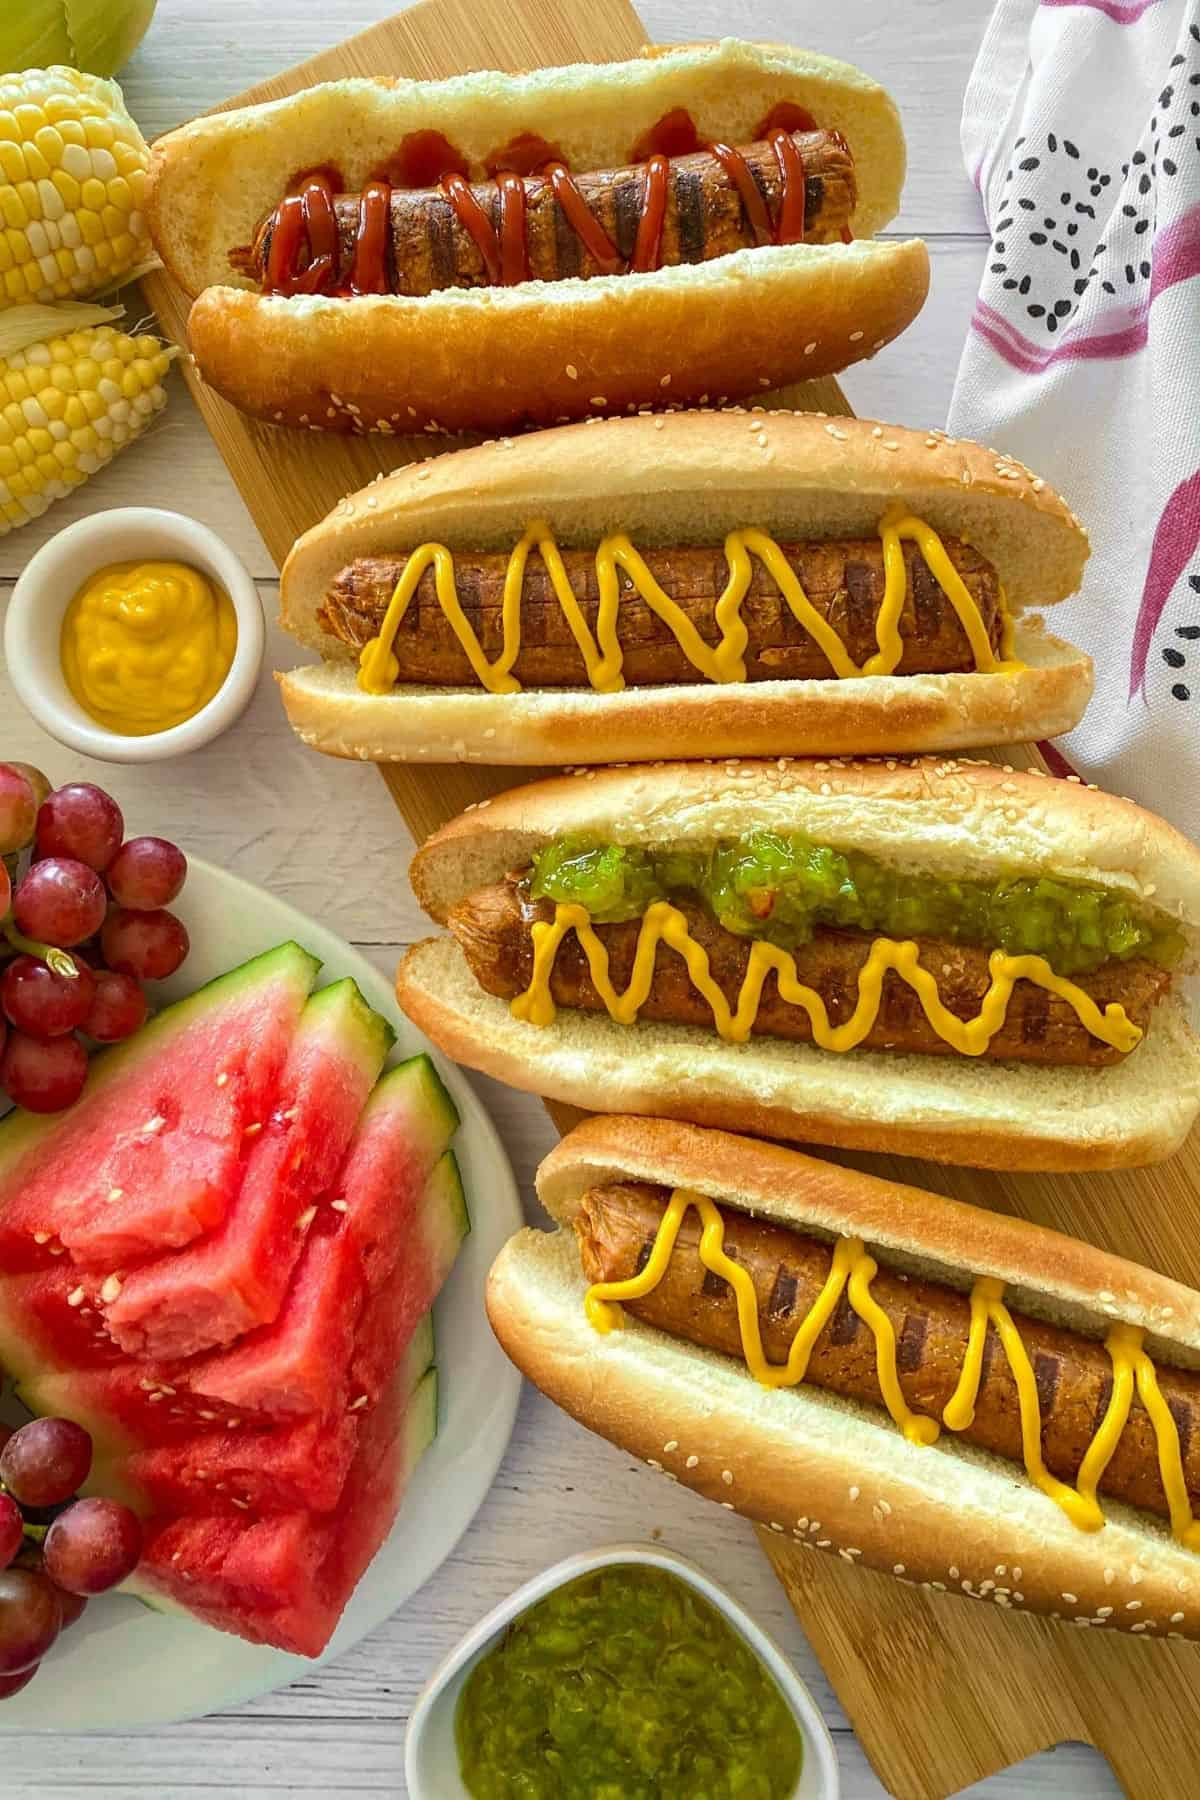 Vegan hot dogs in buns with mustard and relish on top.